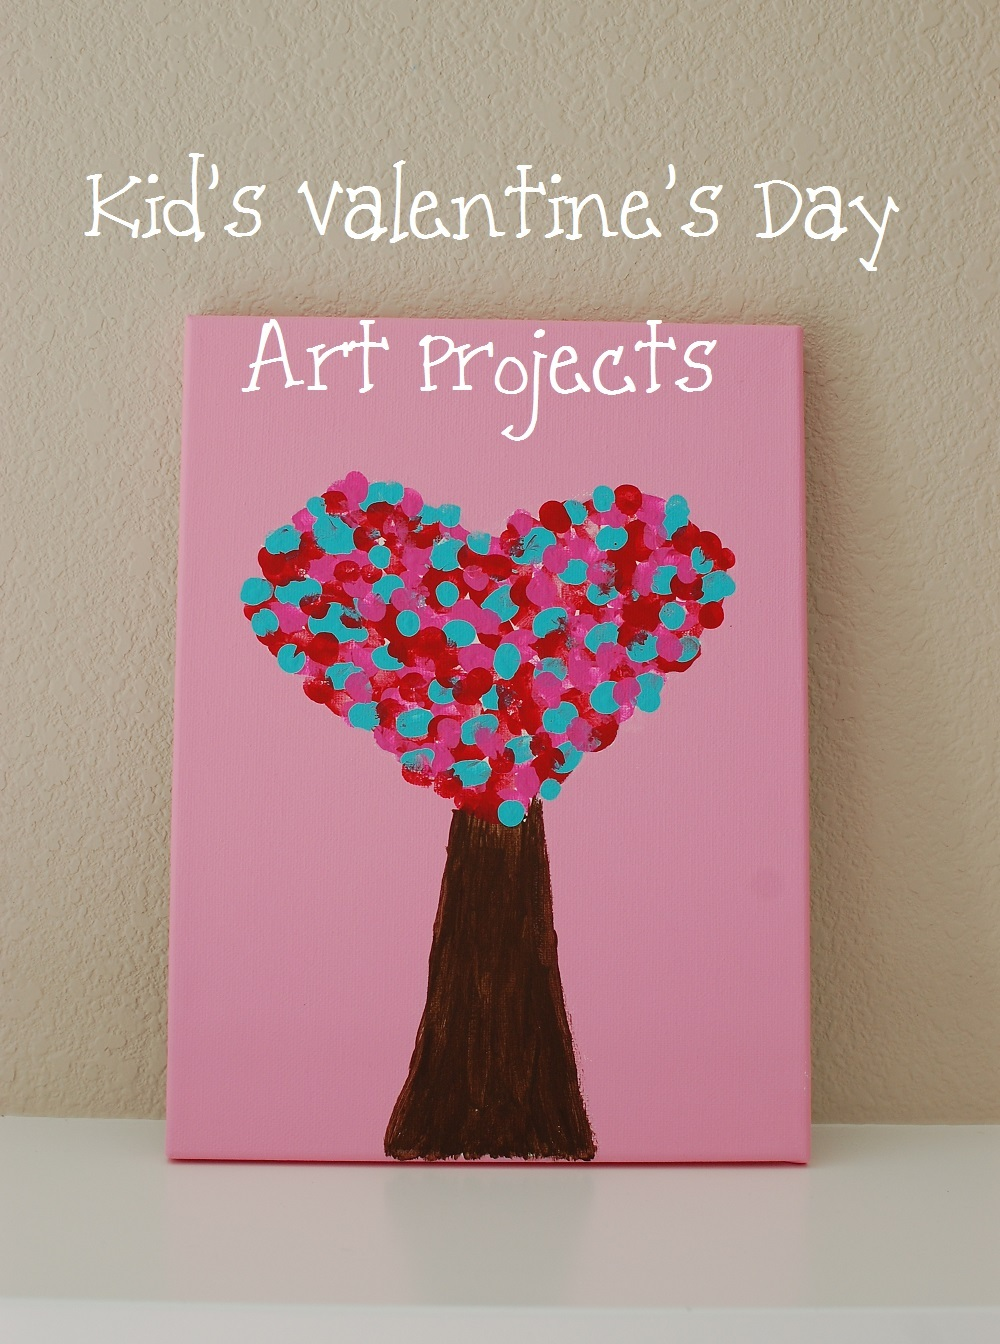 Kid's Valentine's Day Art Projects